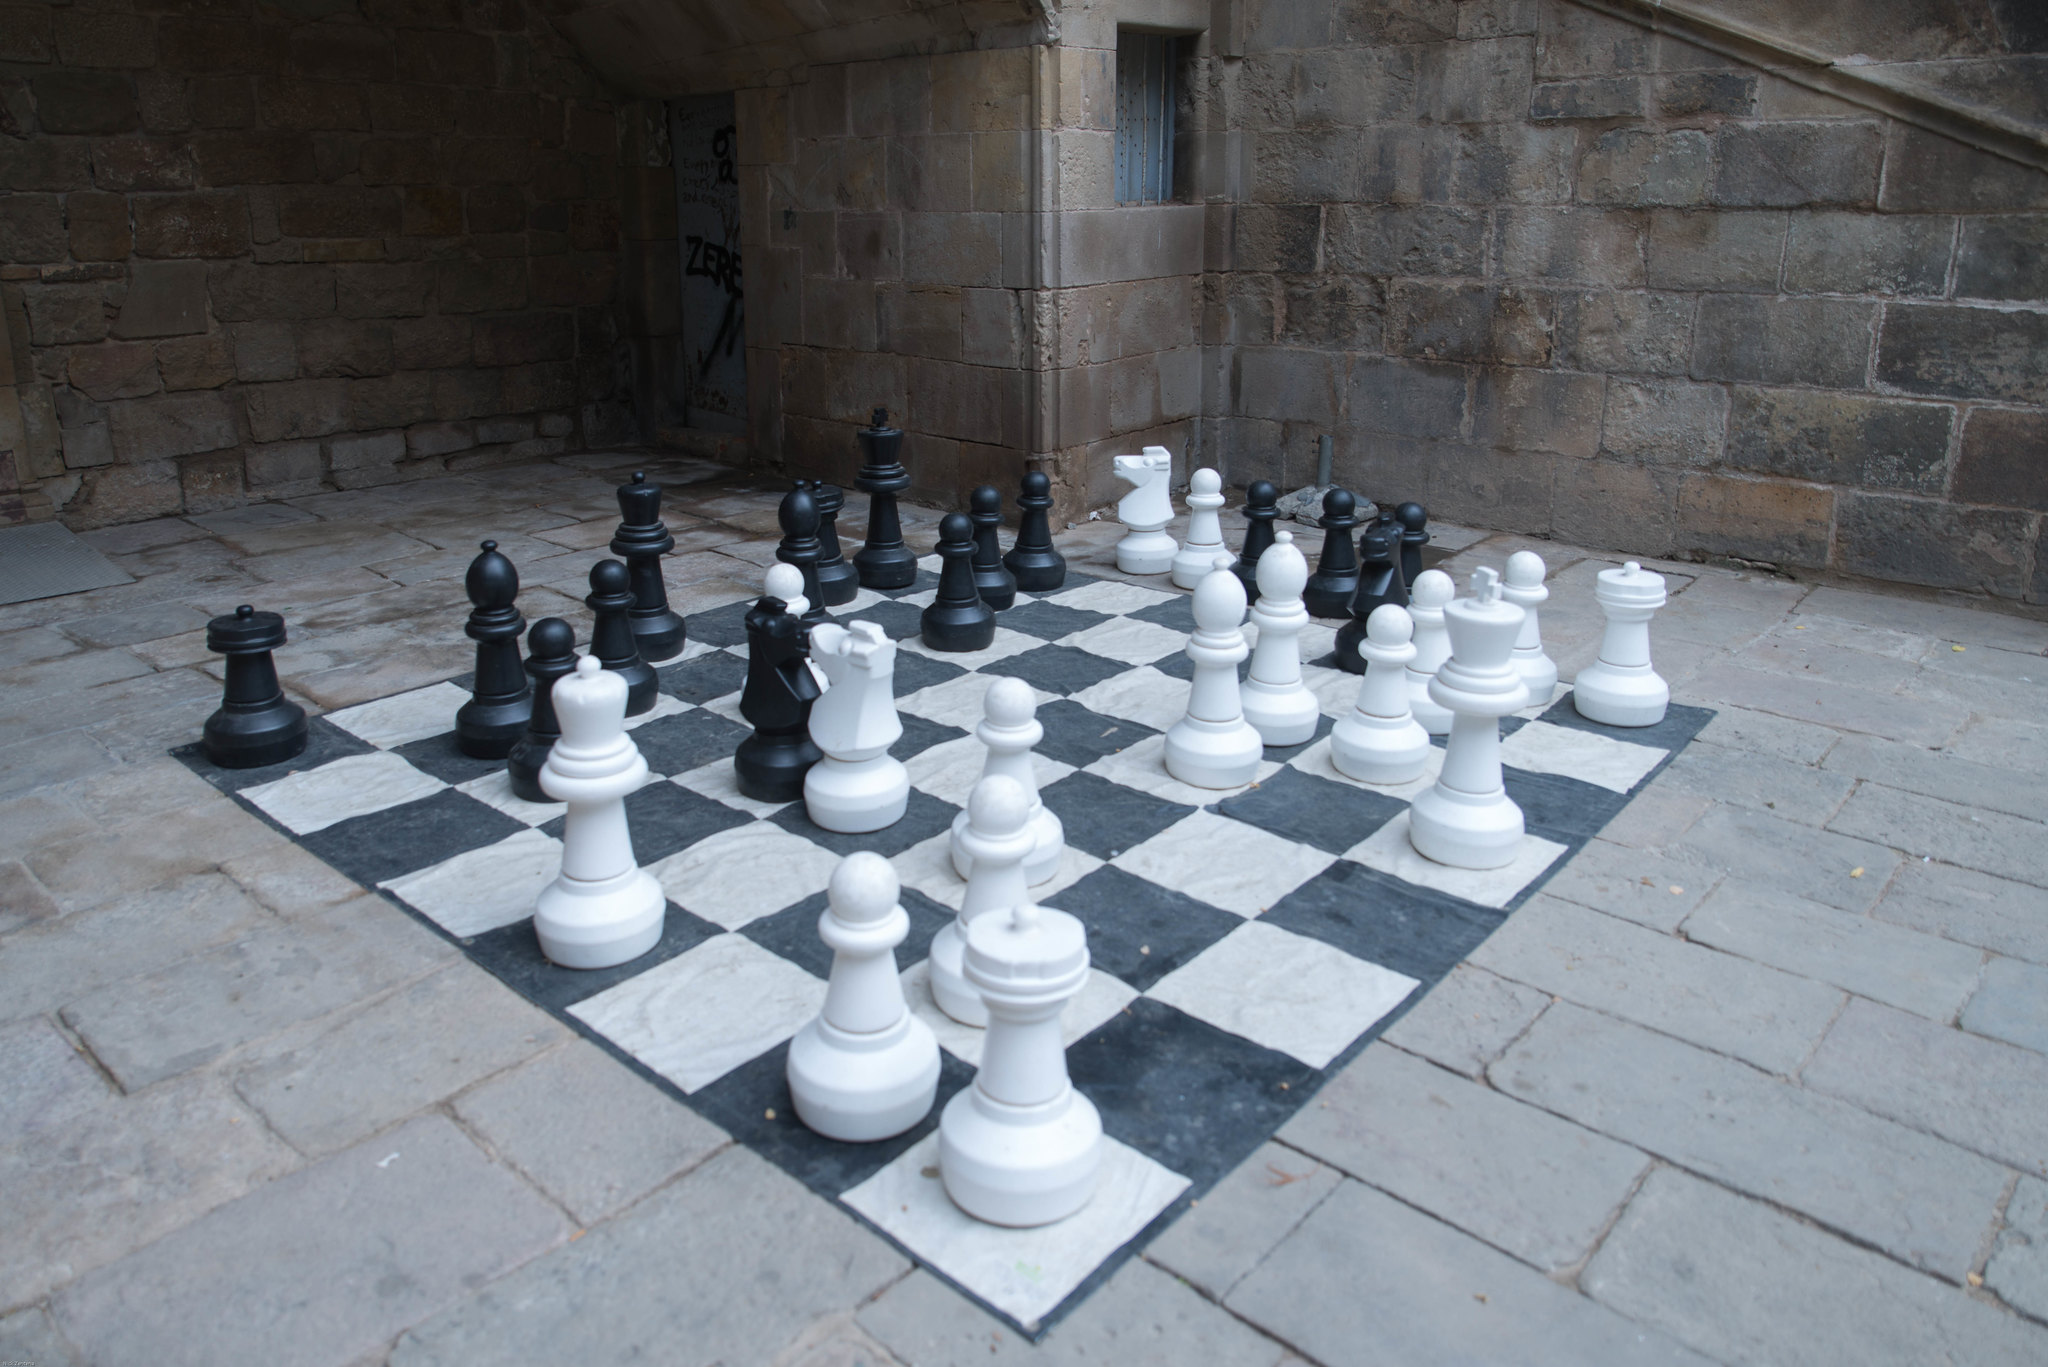 Extra large chess set in Barcelona Spain